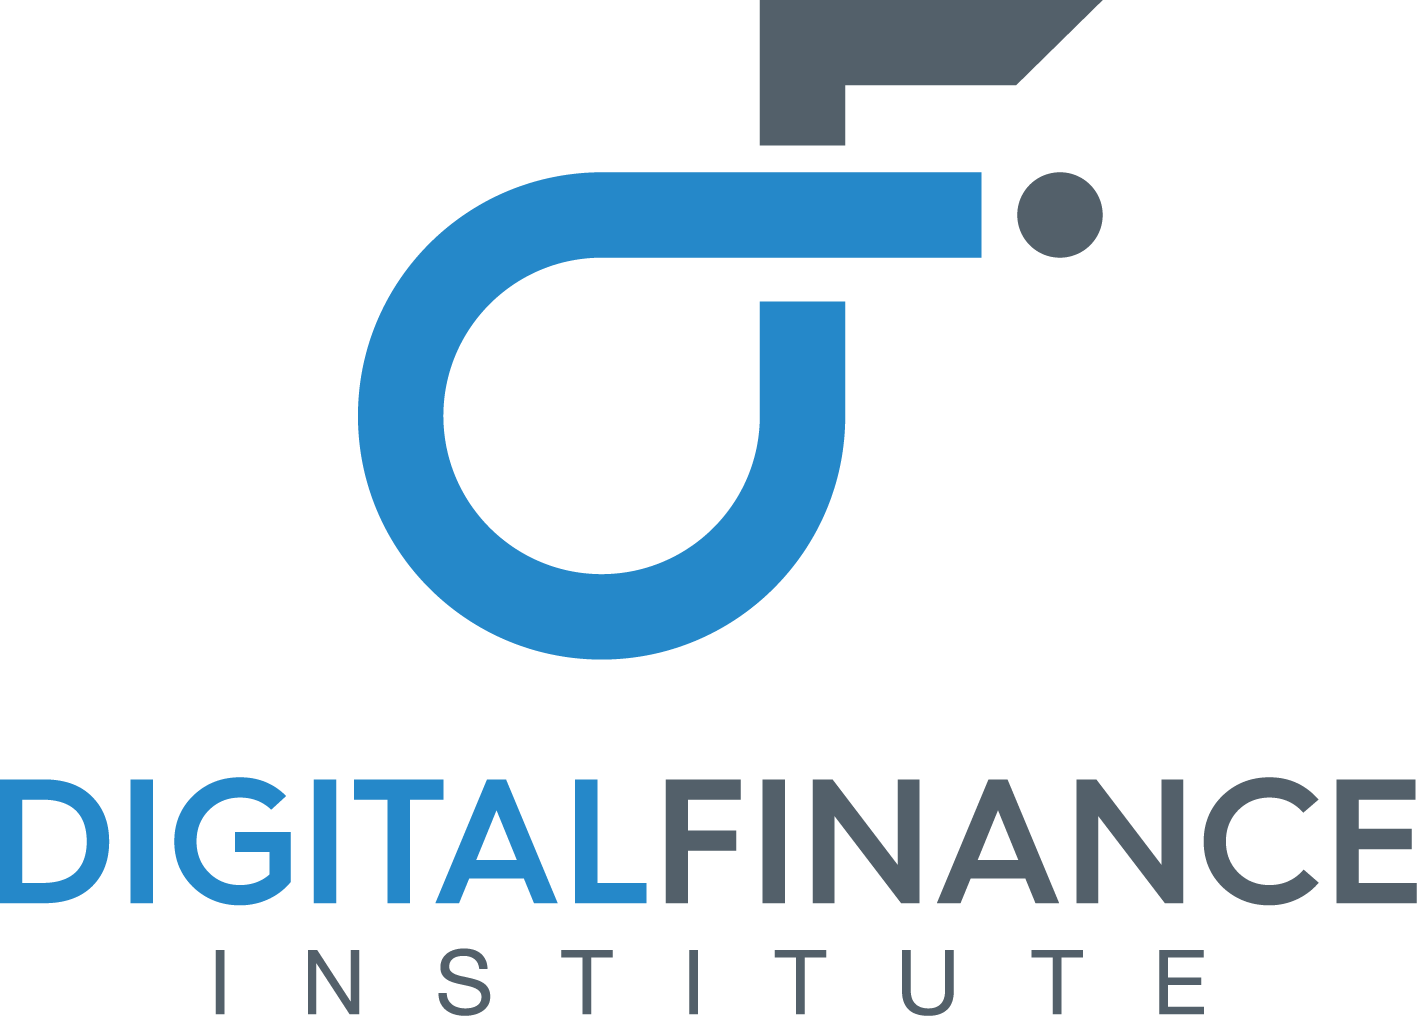 Digital Finance Institute logo